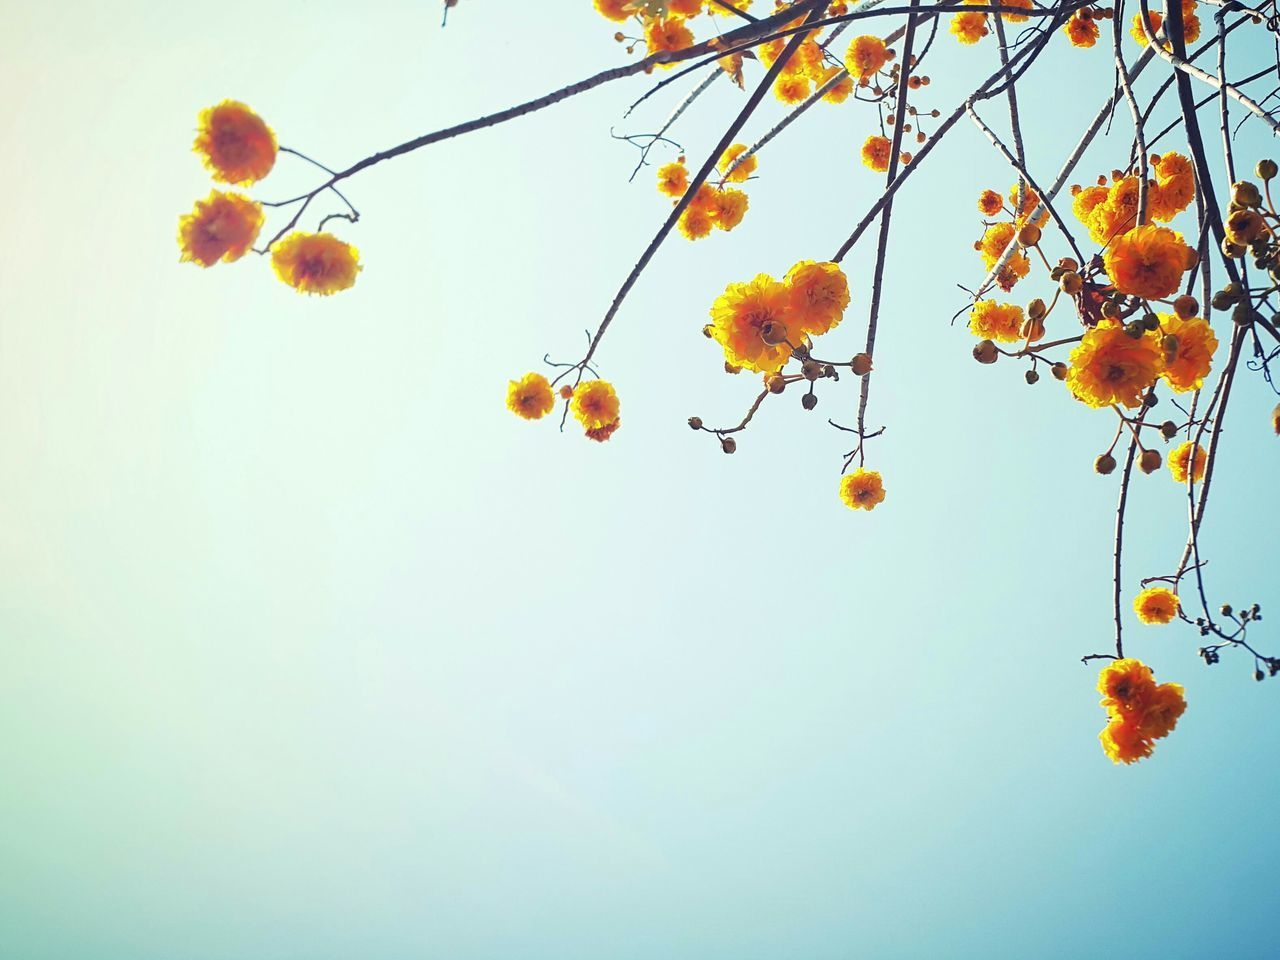 nature, beauty in nature, low angle view, growth, autumn, tree, leaf, no people, outdoors, day, flower, sky, yellow, clear sky, branch, fragility, tranquility, freshness, scenics, close-up